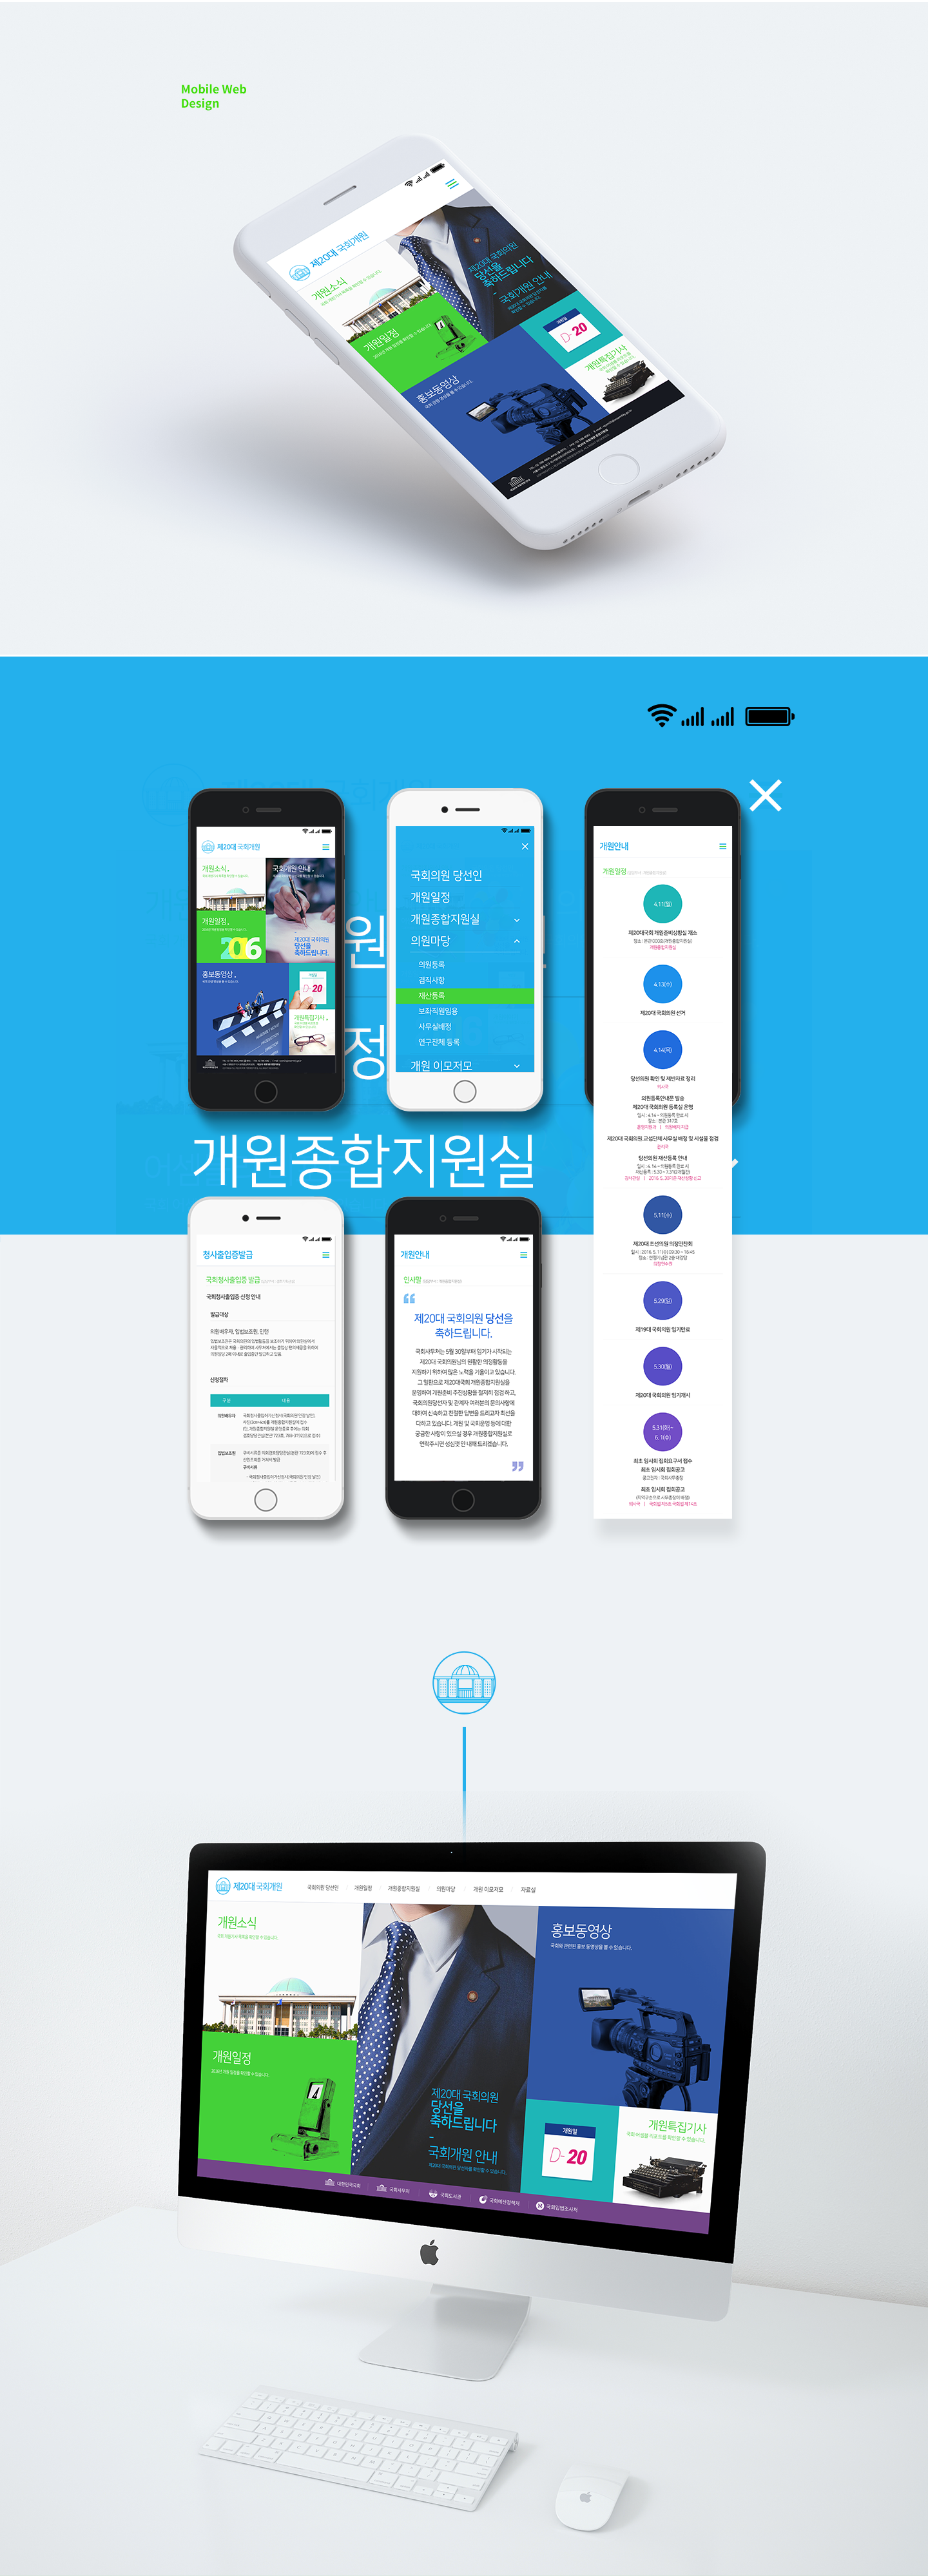 20th Assembly Opening Website DesignDesign ConceptKey words that contain the basic direction of the National Assembly are trust + fair + transparent.Based on the three major keywords, we extracted detailed keywords based on the categories Persona, Feel…